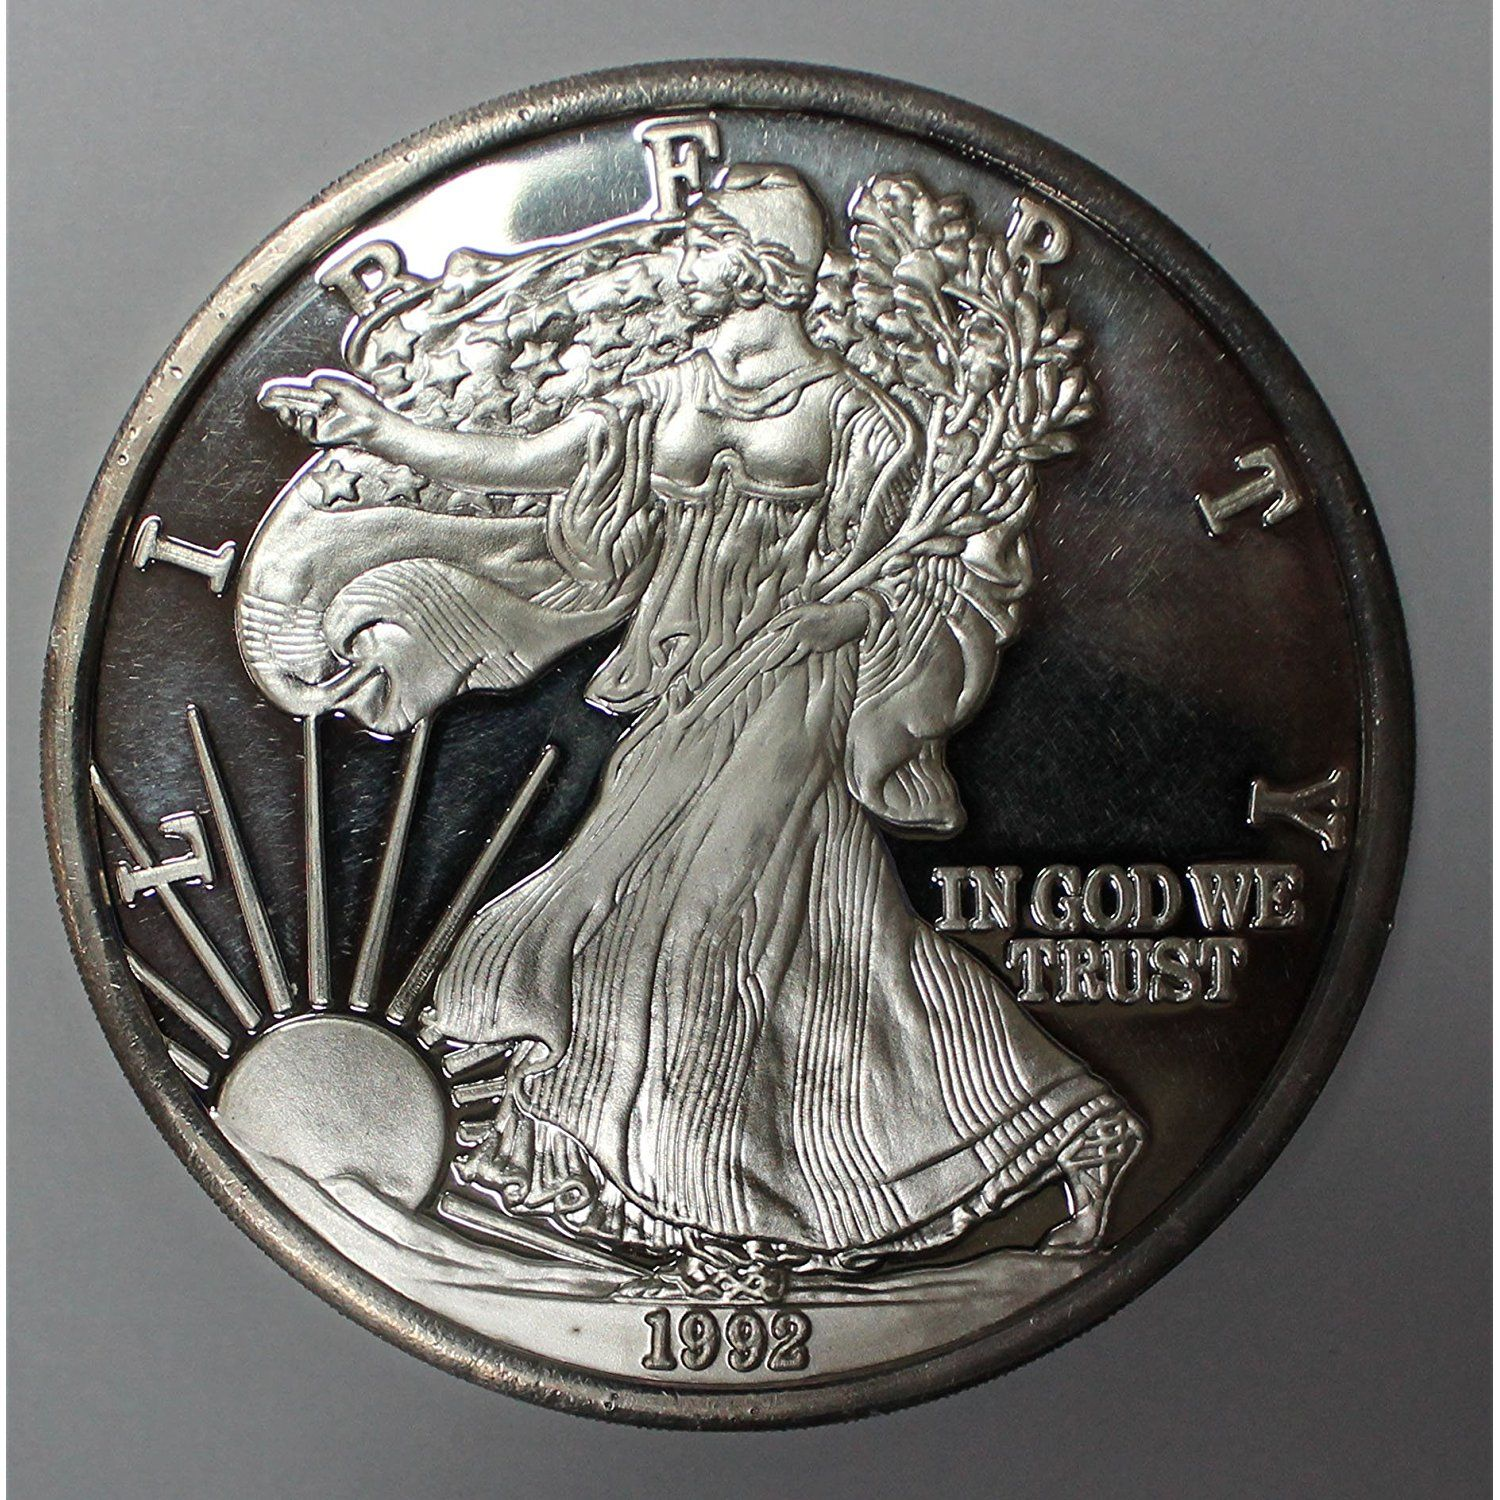 1992 American Silver Eagle 1 Pound Commemorative Round 1lb Uncirculated For More Information American Silver Eagle Coin Collecting Silver Eagles